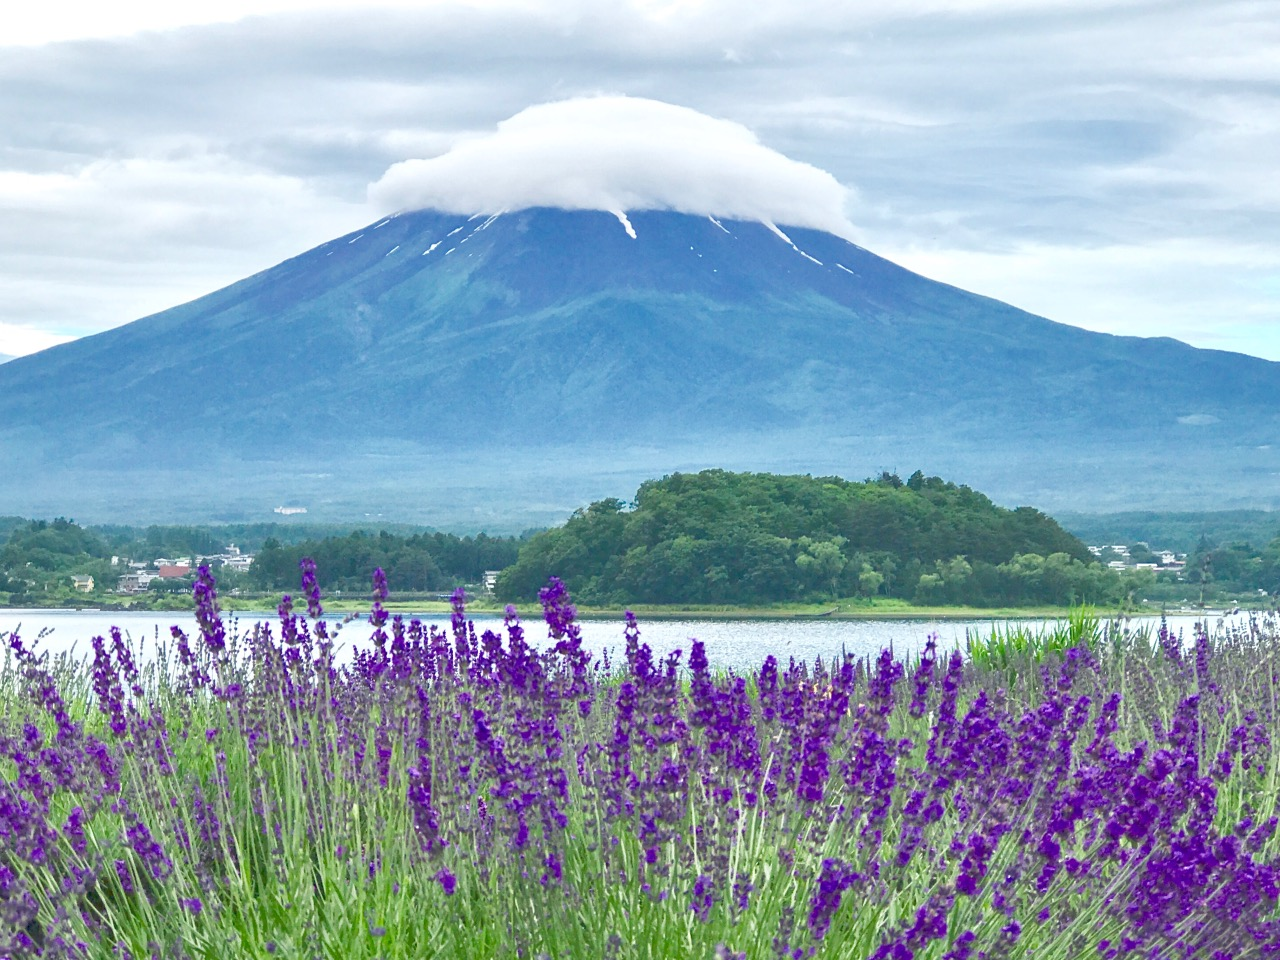 Beautiful Fuji mountain.